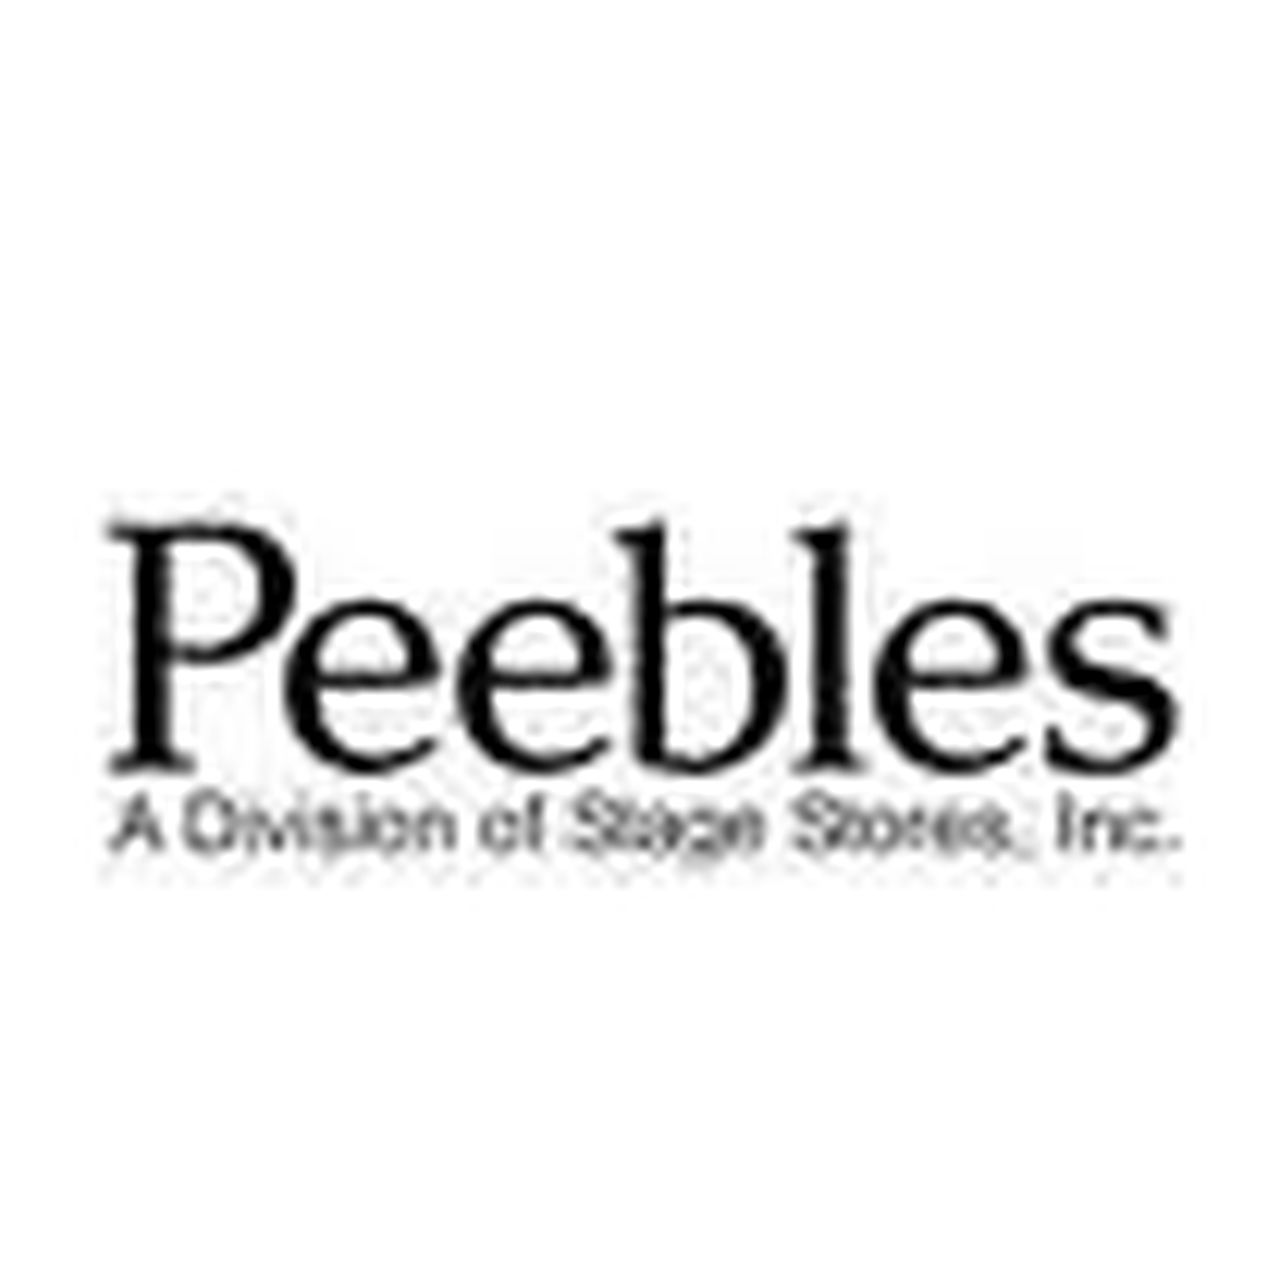 Peebles Printable Coupon for 25% off Single Item Clearance